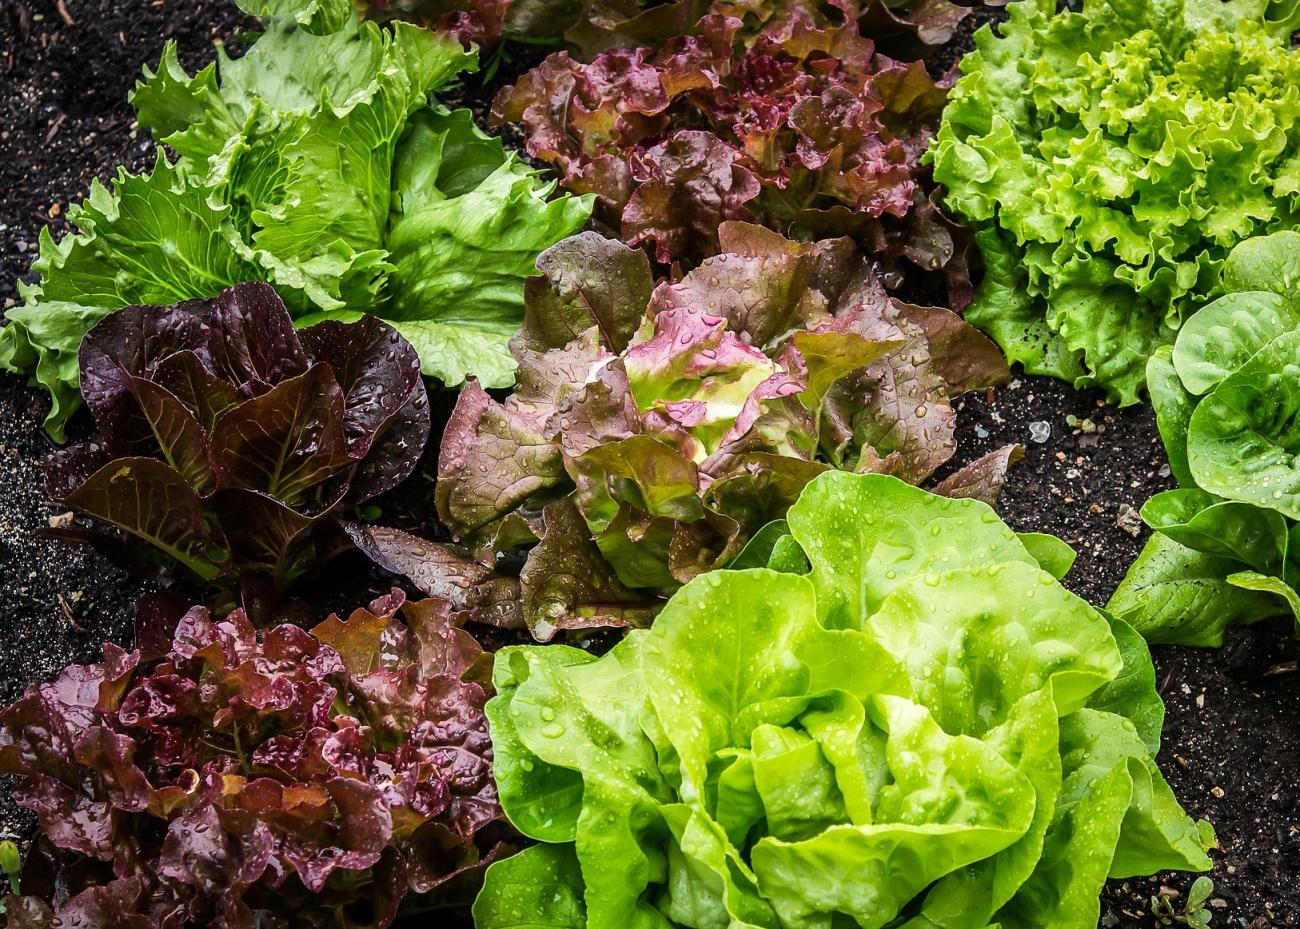 Lettuce: Planting, Growing, and Harvesting Lettuce | The Old